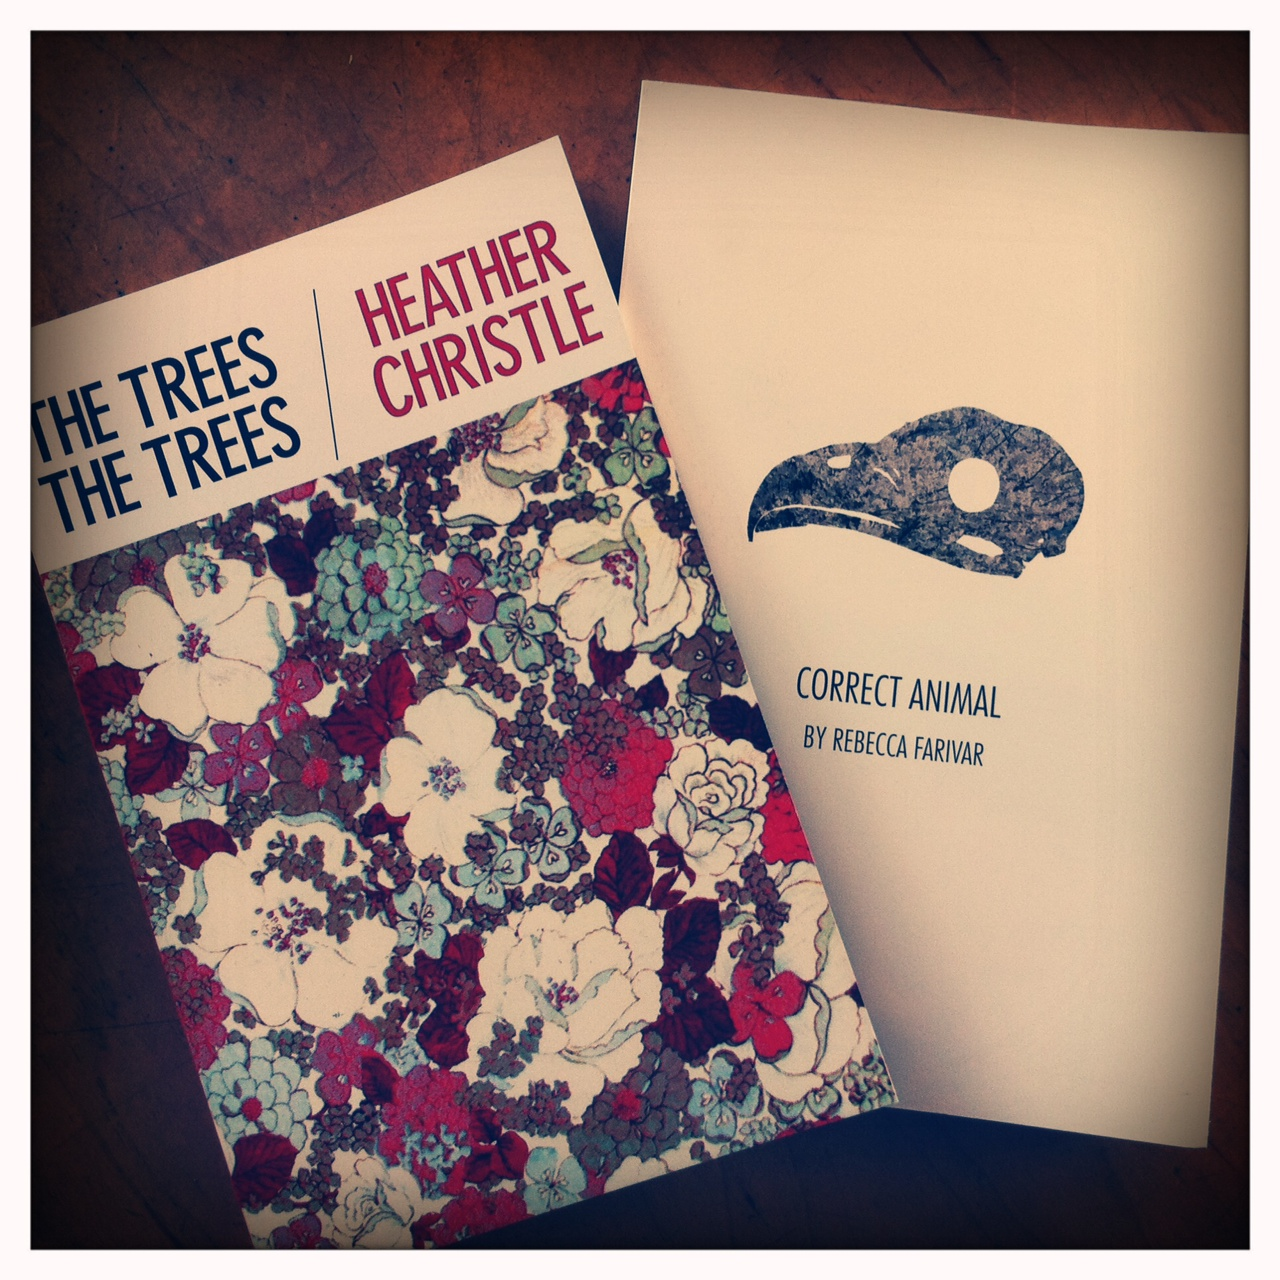 Rebecca Farivar's Correct Animal and Heather Christle's The Trees The Trees are now available for purchase.